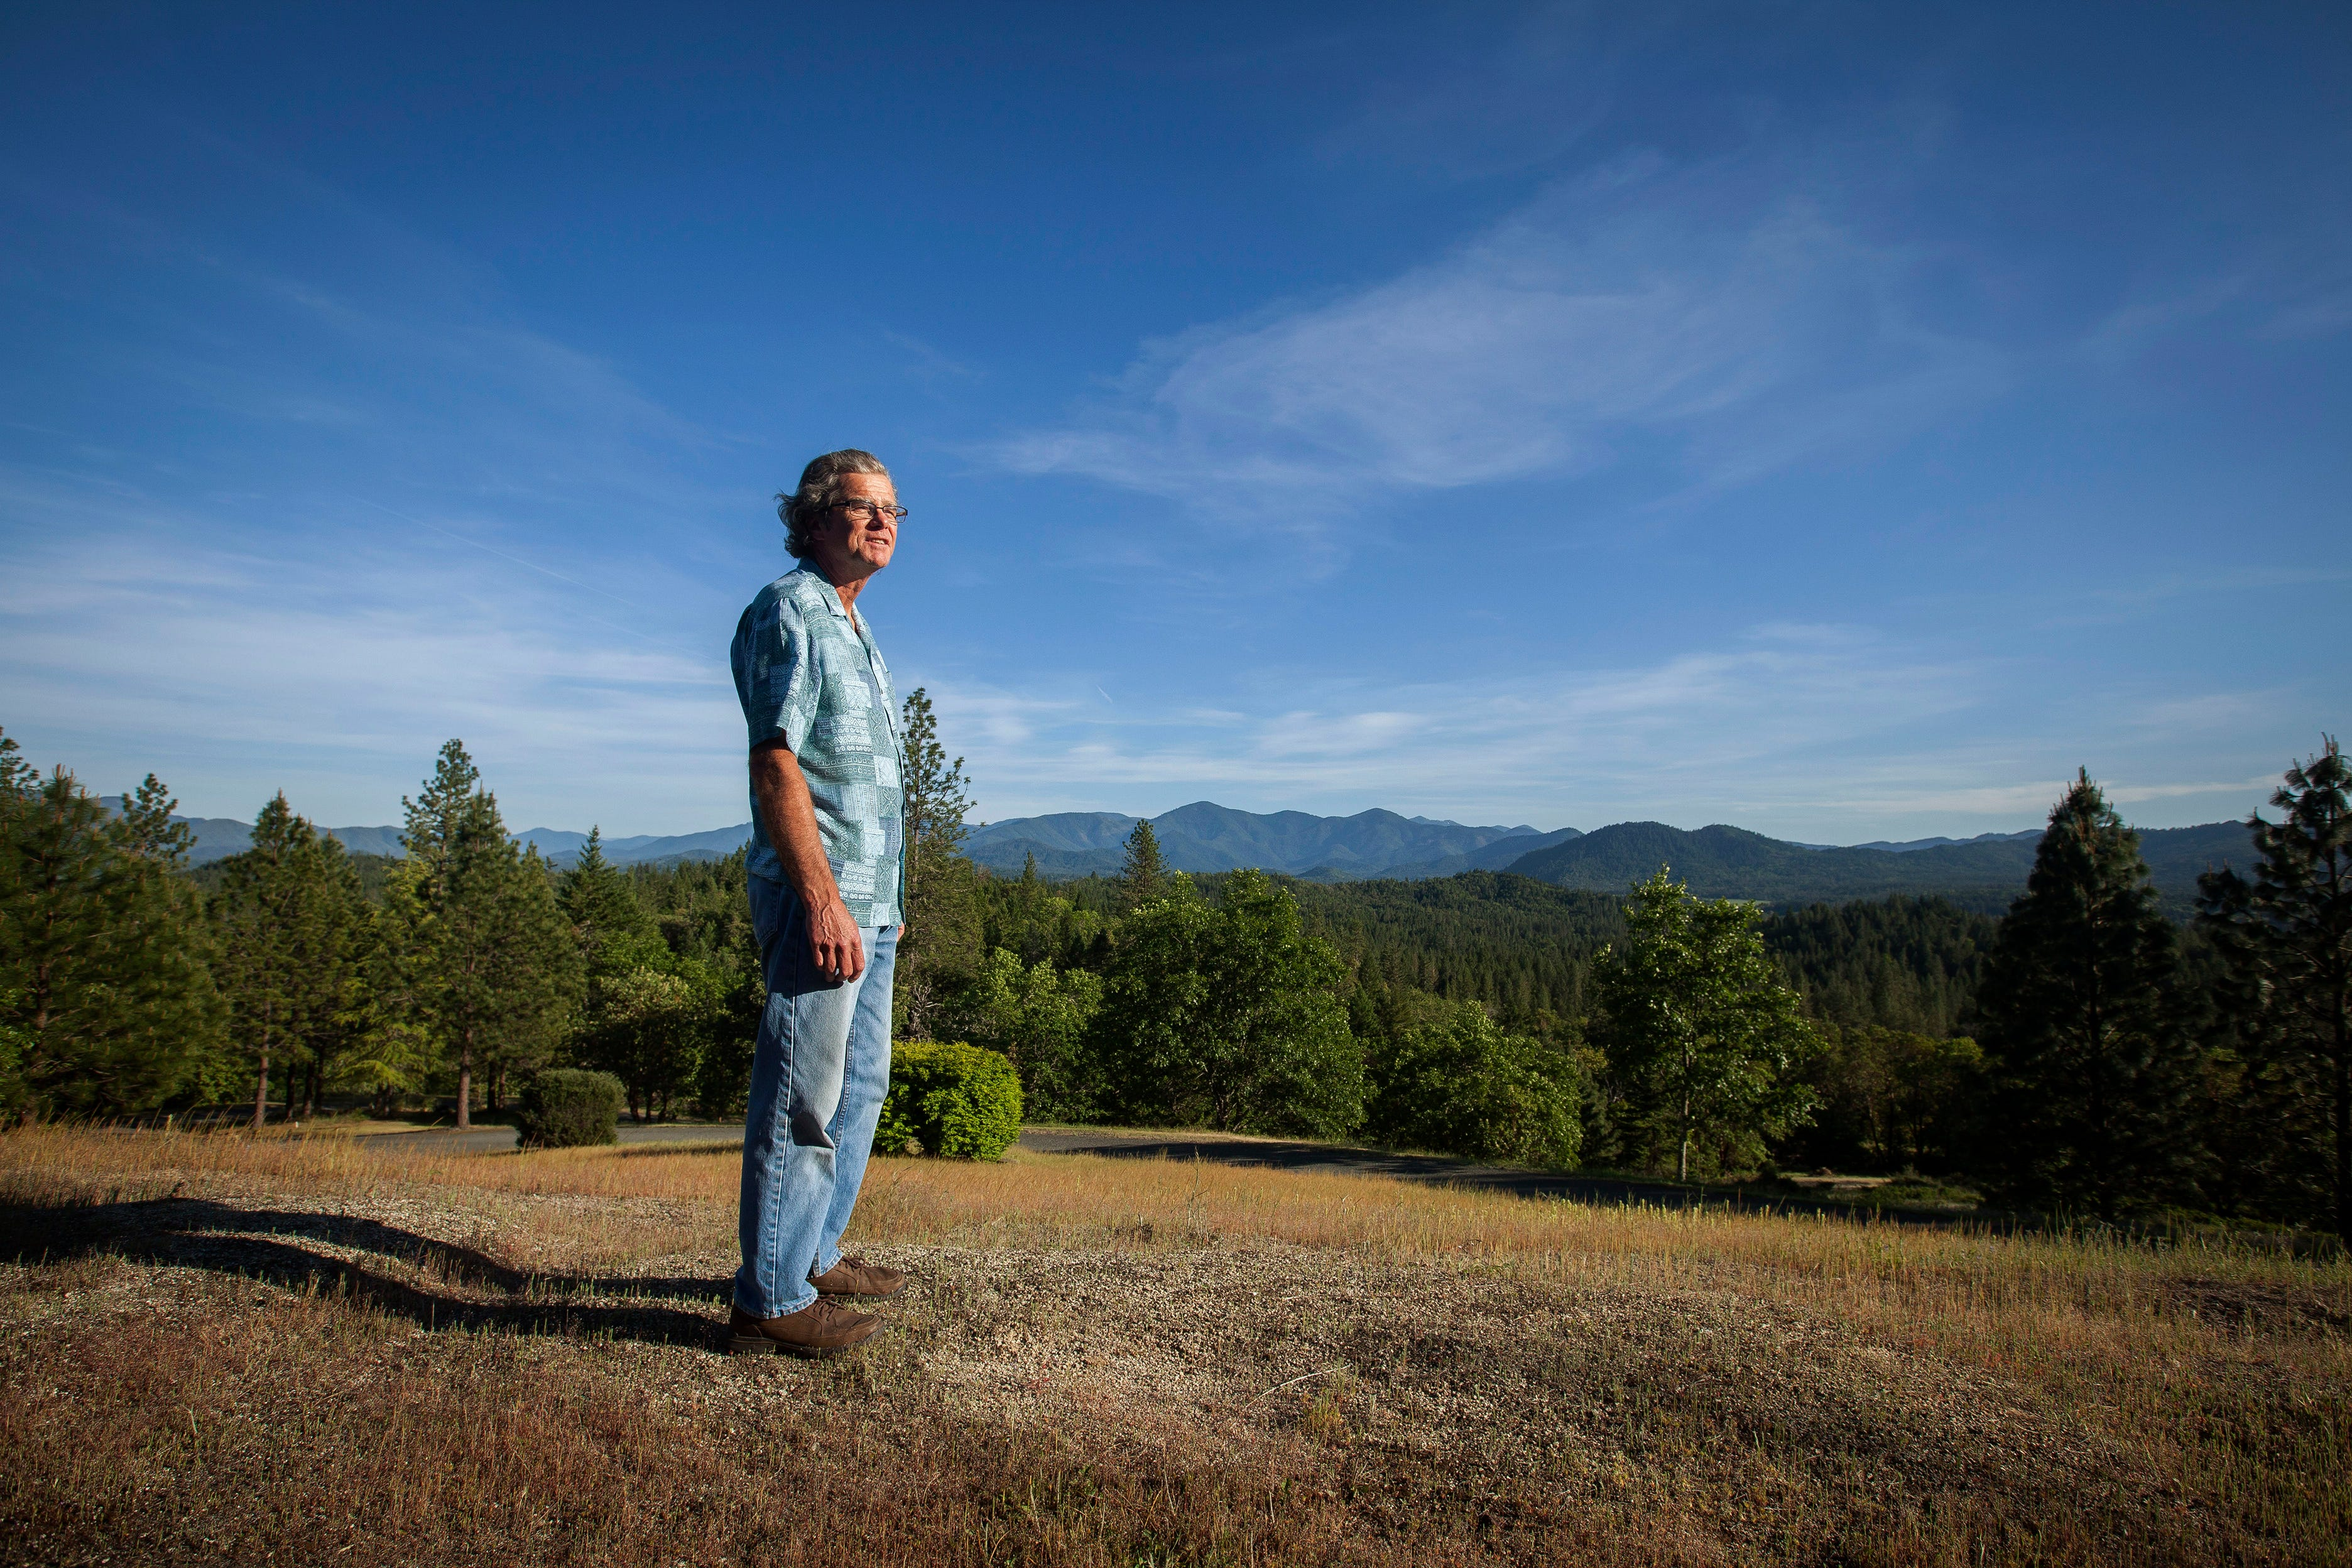 The view from Steve Burchell's home in Grants Pass, near Merlin in the Rogue Valley.   Since purchasing the home a little over a year ago, he has been working to prepare for the upcoming wildfire season. Burchell plans to install a roof irrigation system that will keep his roof wet during a wildfire.